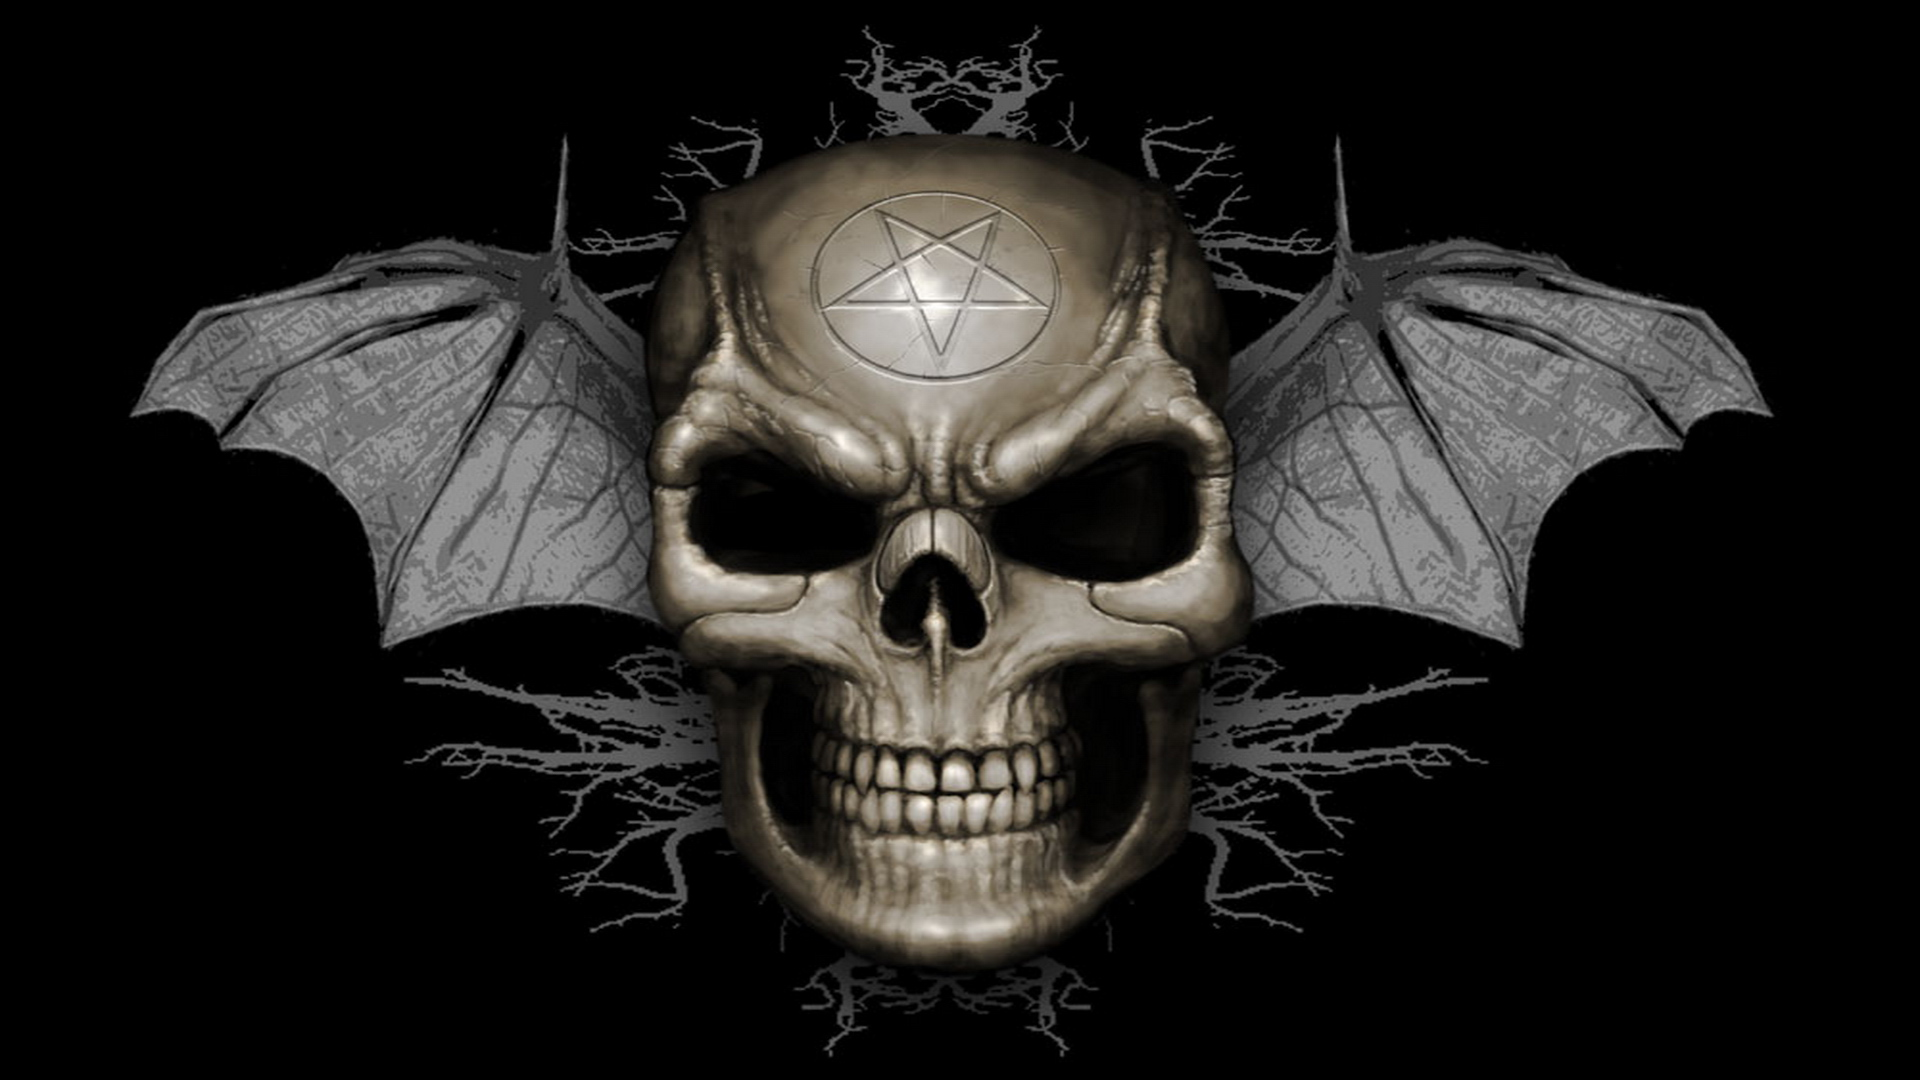 Skull Wallpapers High Quality Download 1920x1080